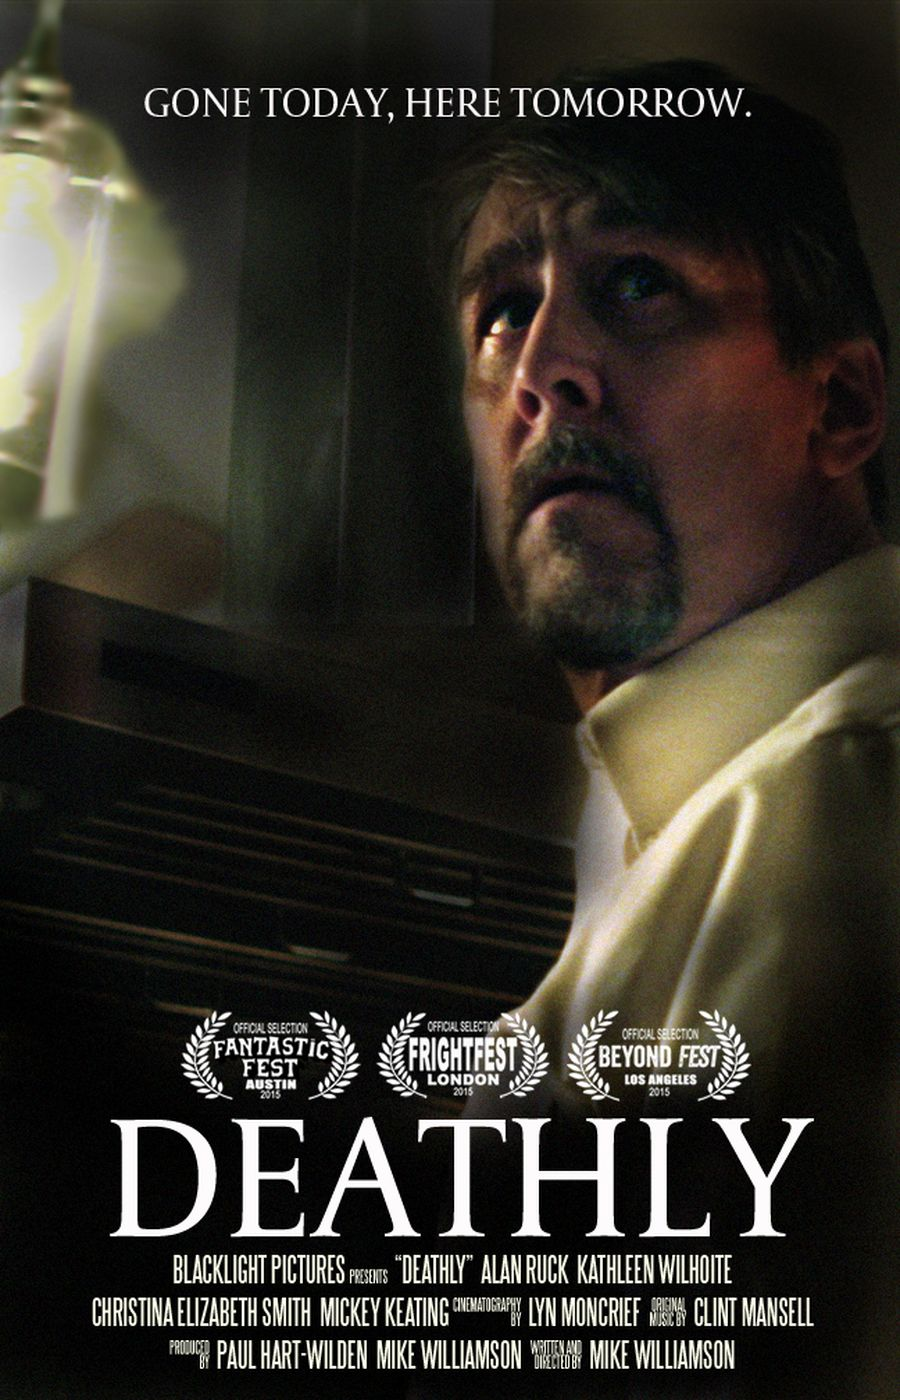 DEATHLY poster FINAL